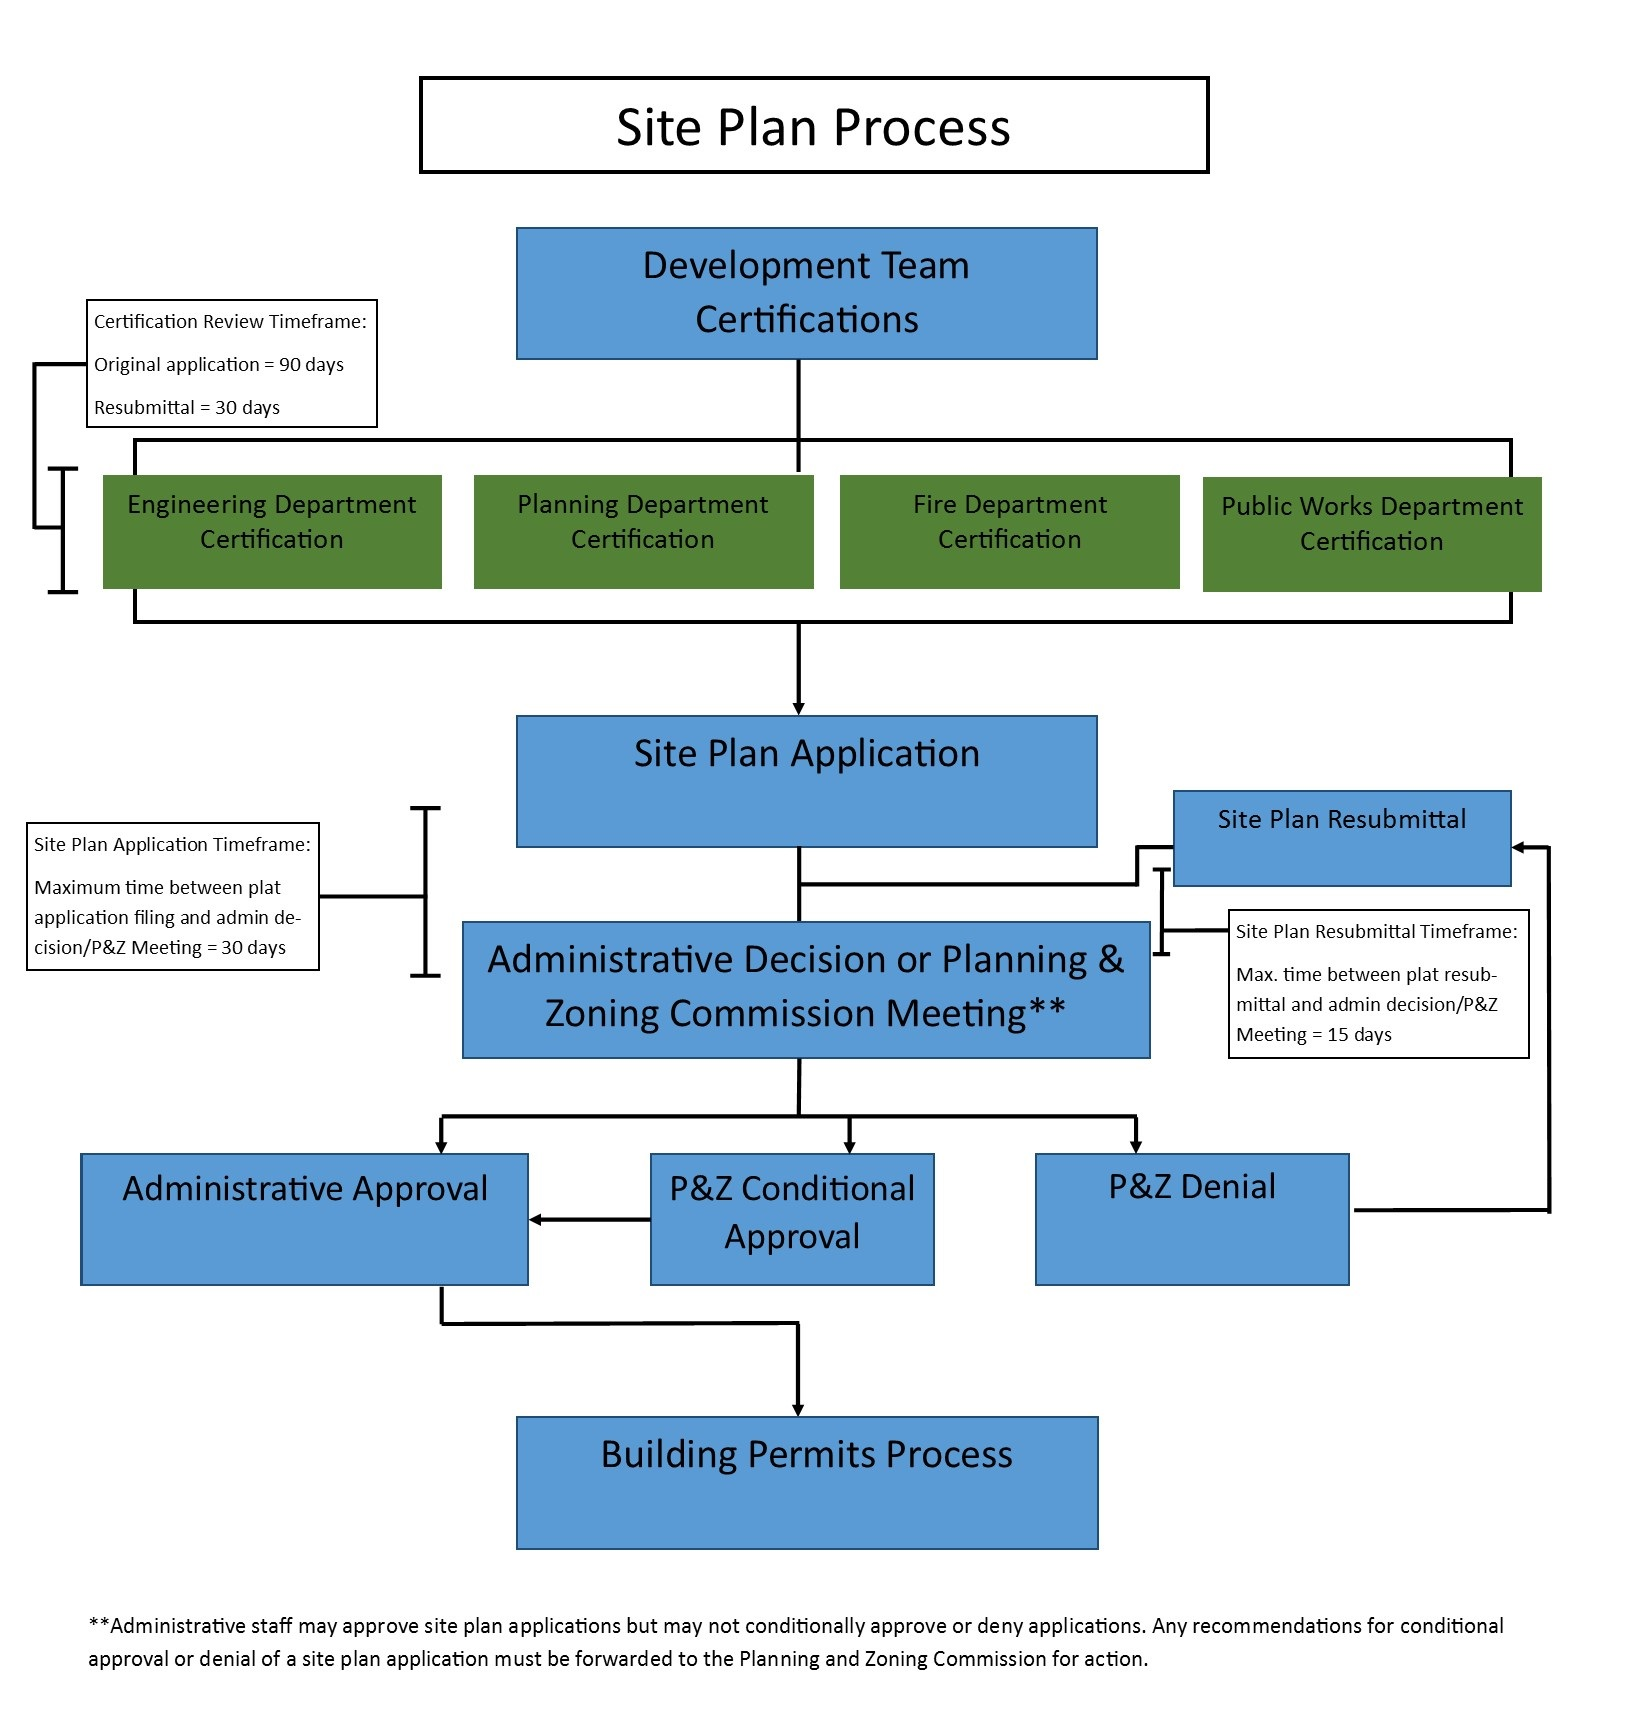 Site Plan Process Flowchart